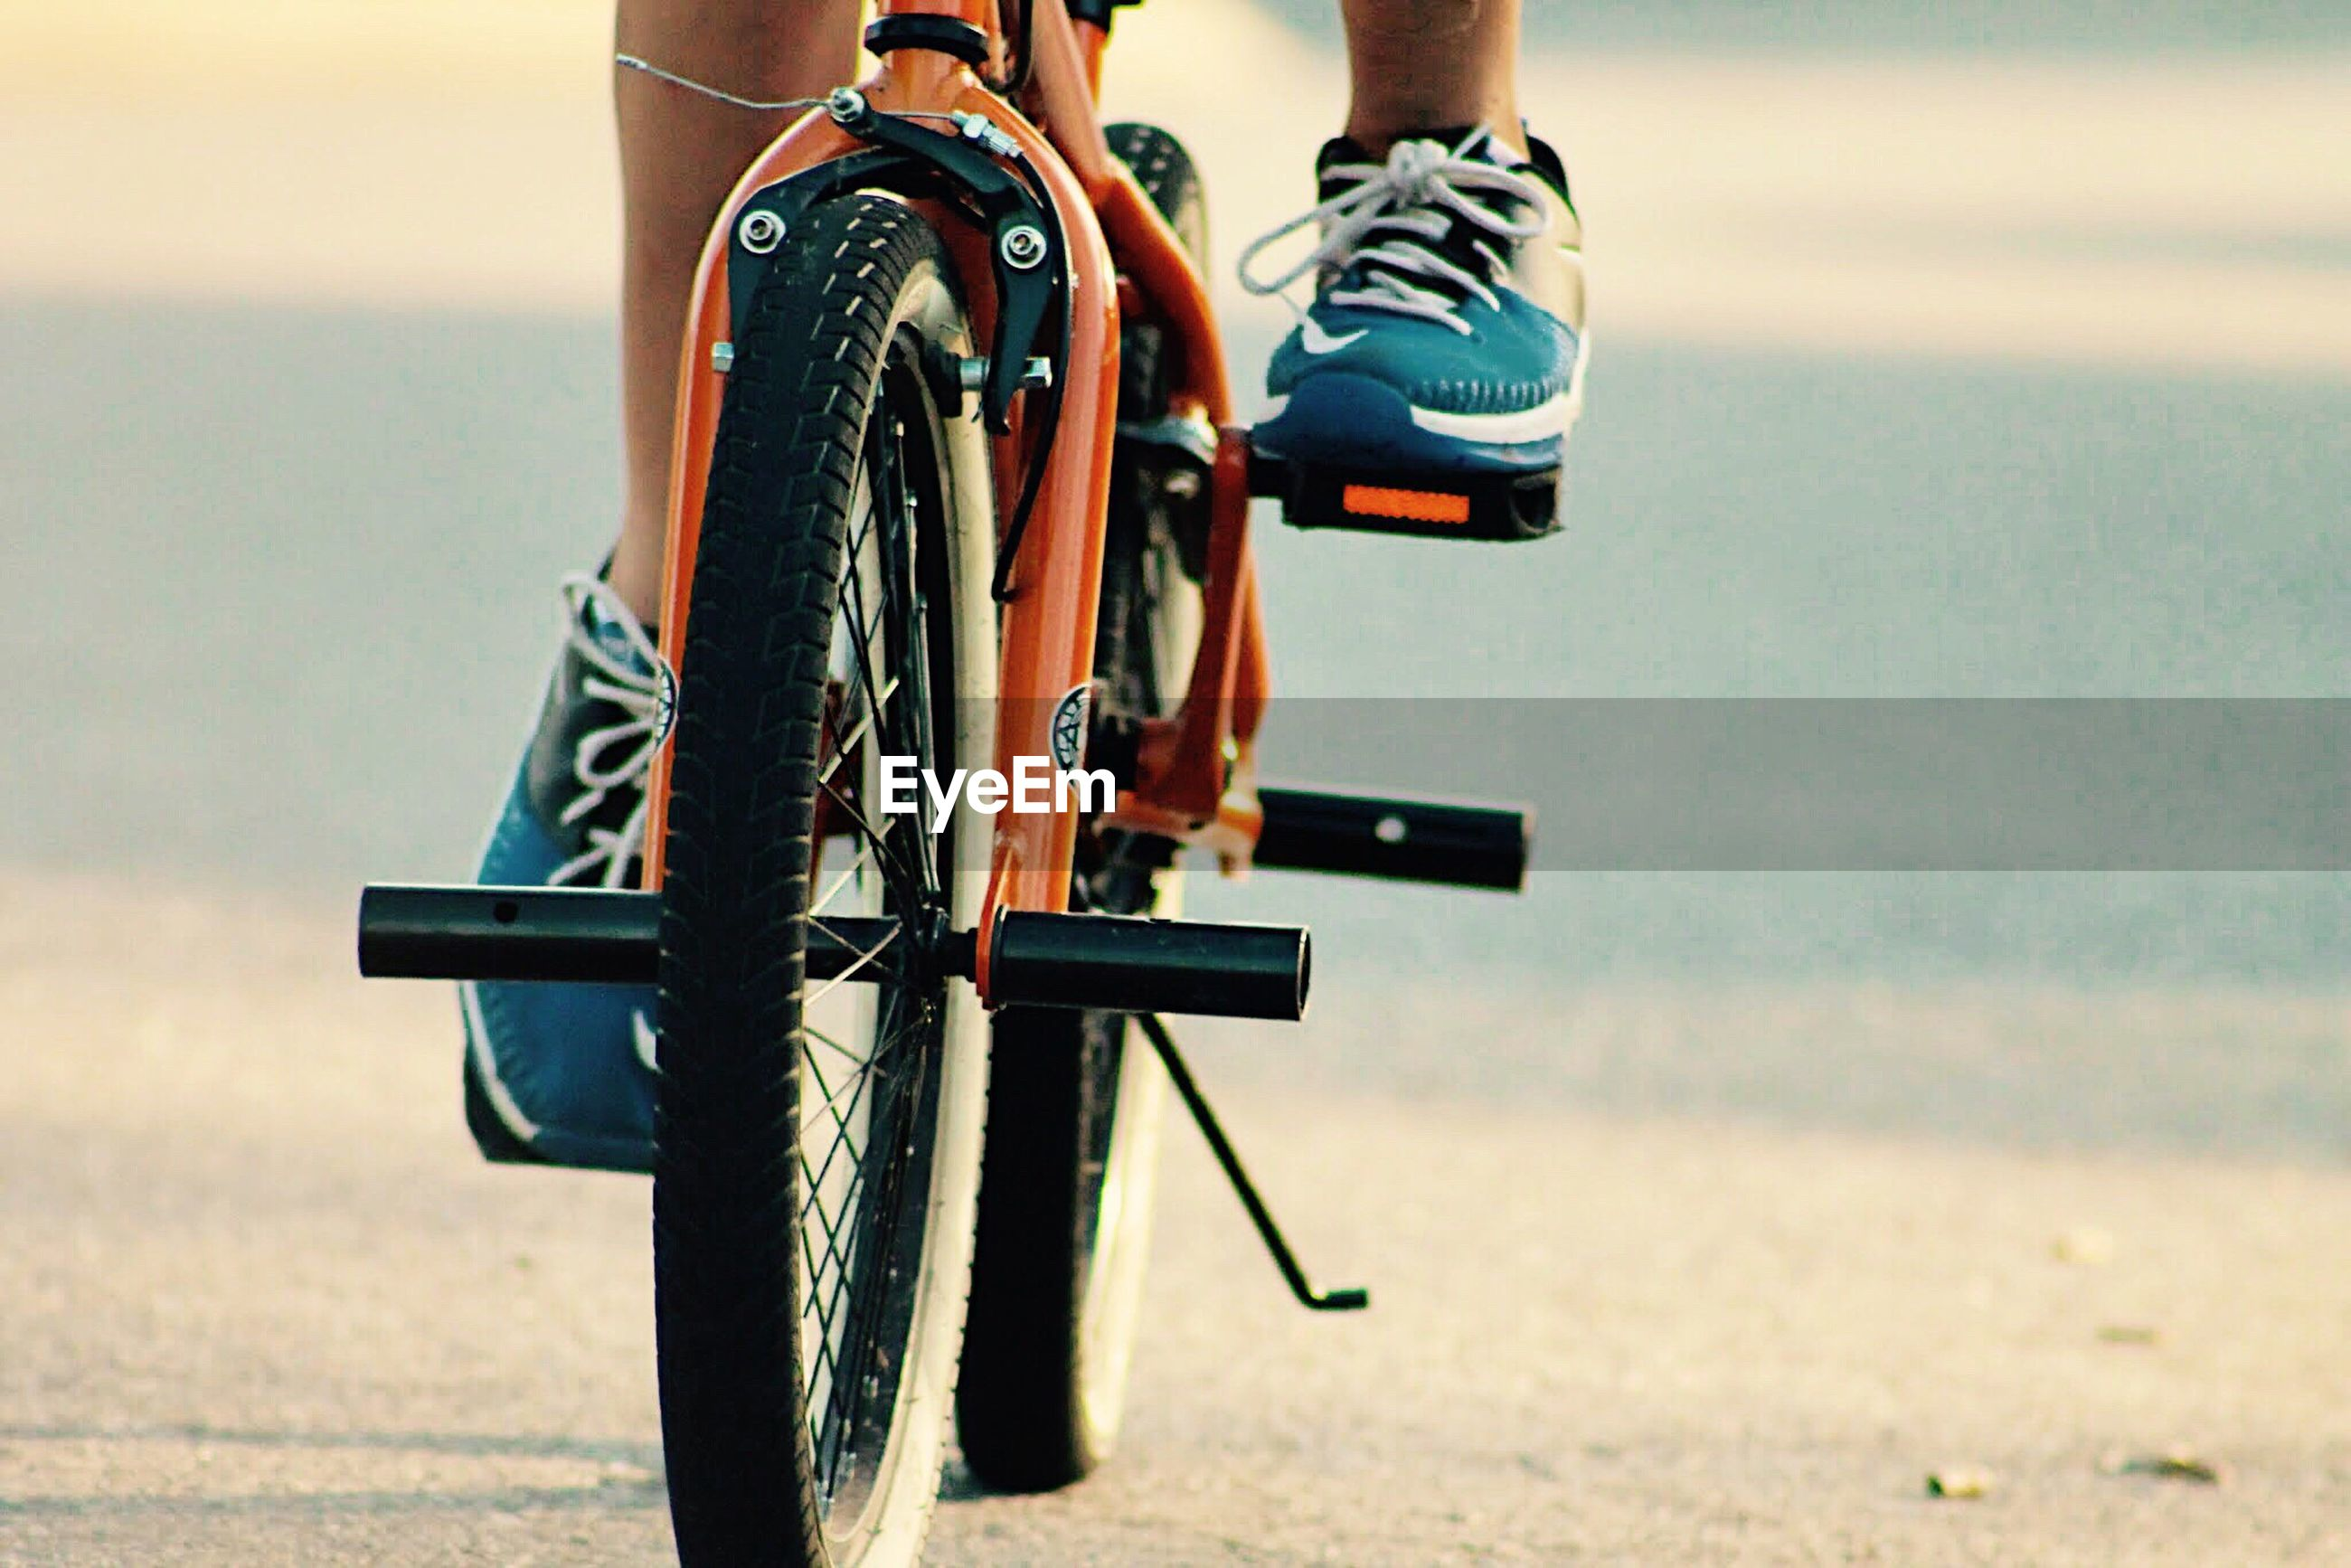 Low section view of person riding bicycle